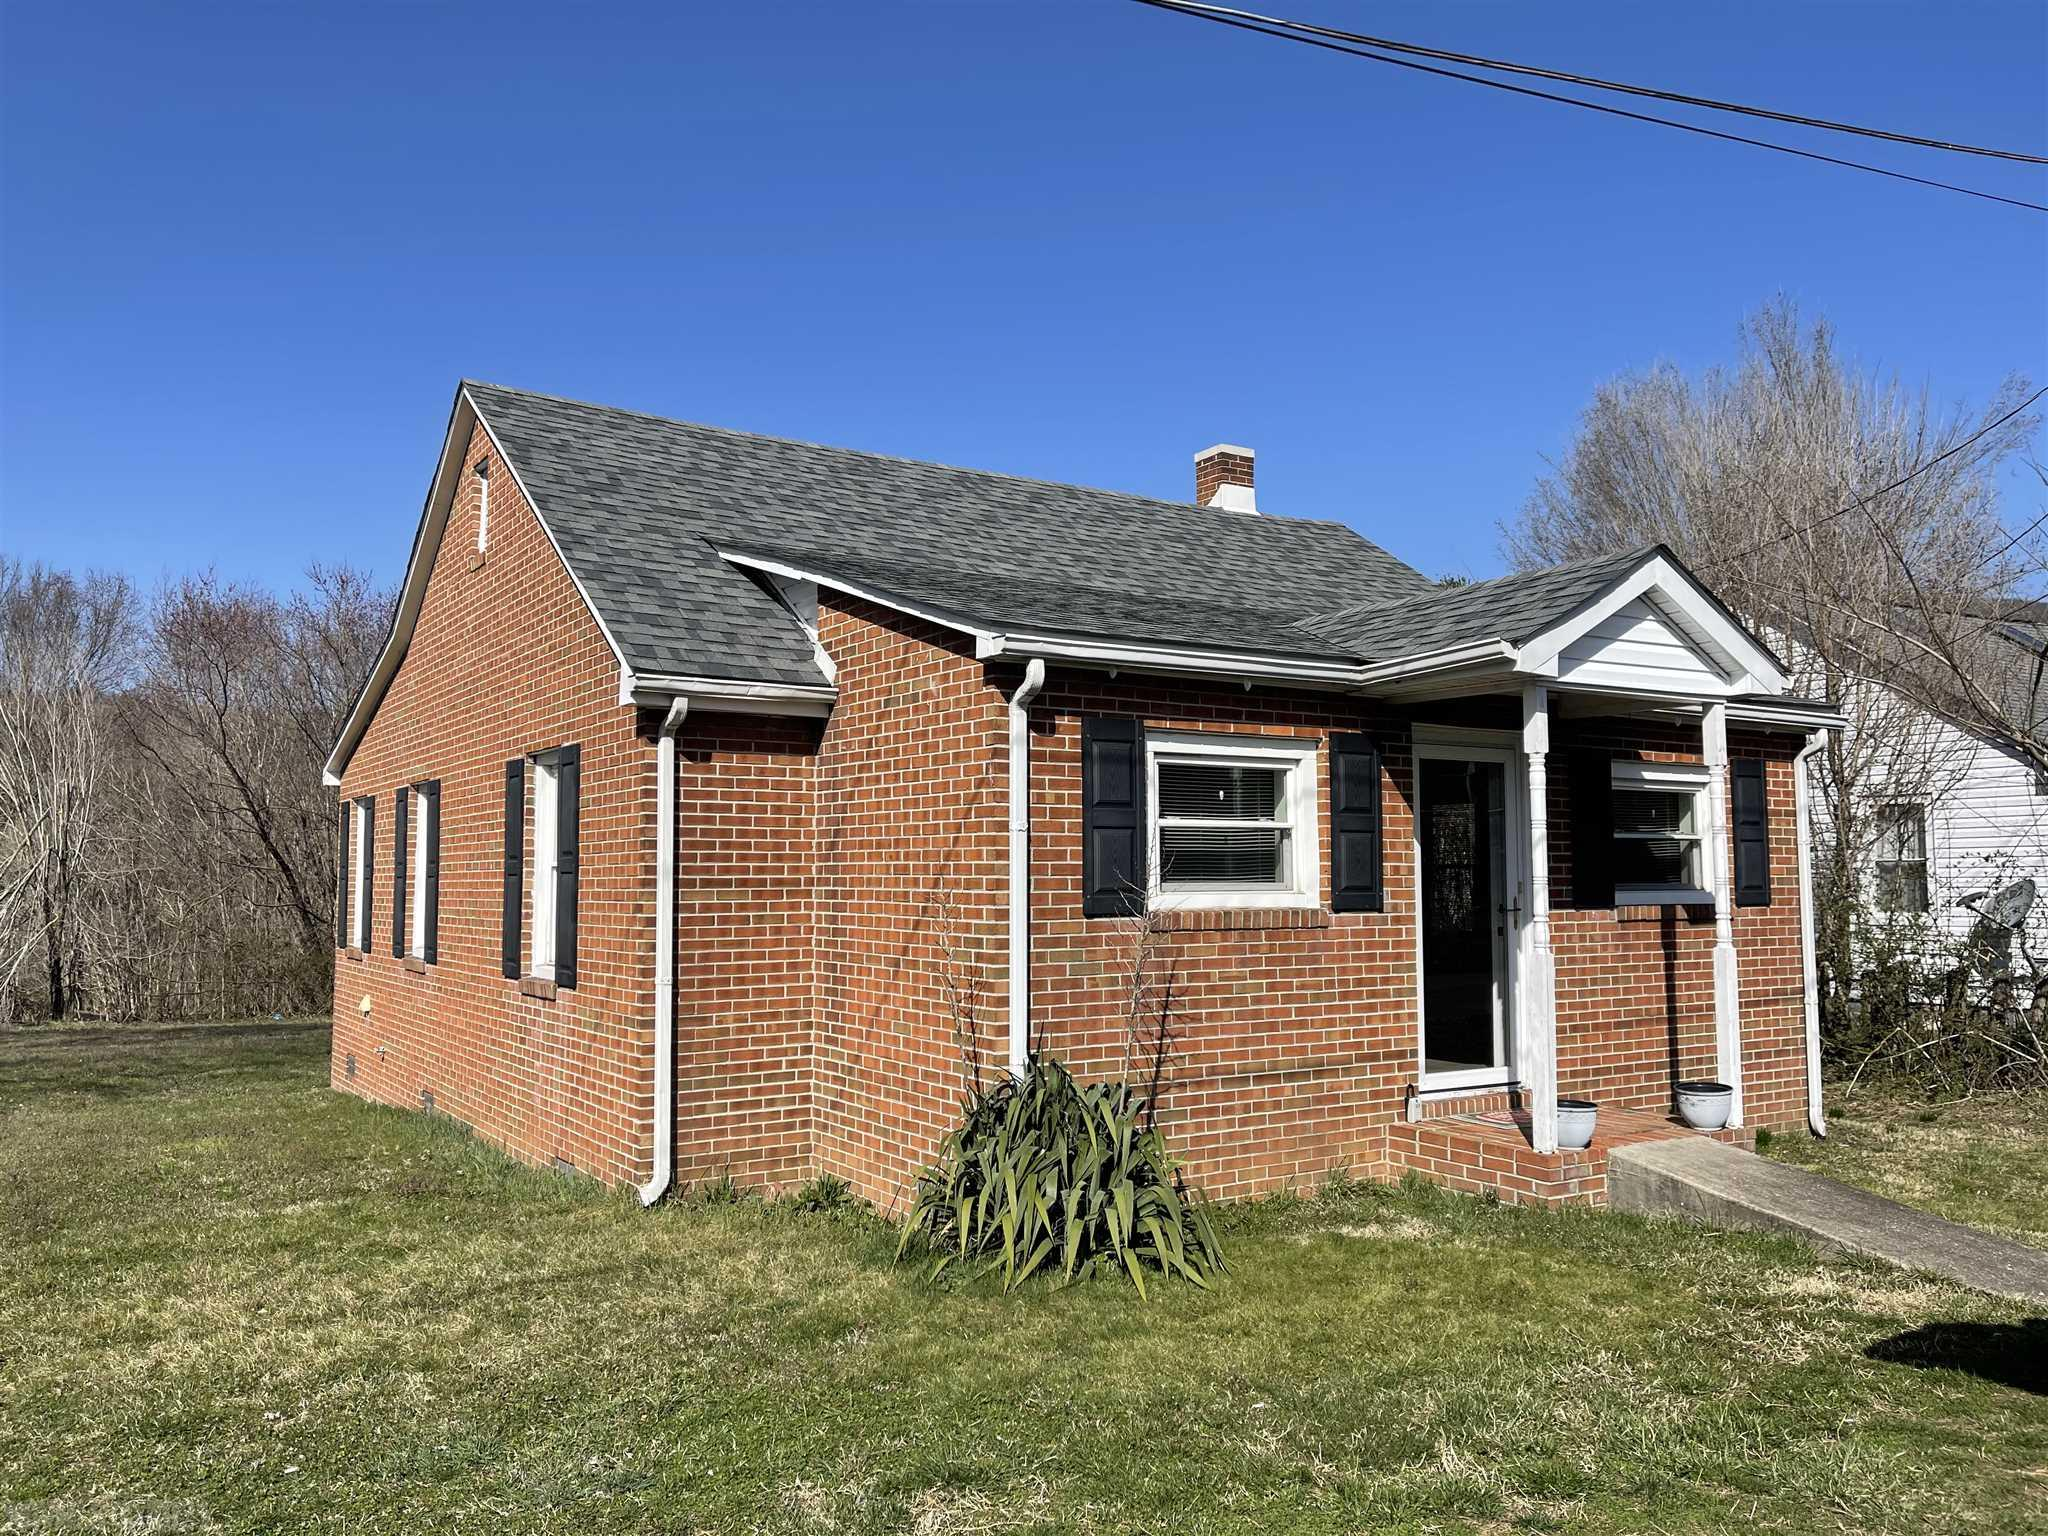 Adorable brick  located in the heart of Narrows. Two nice sized bedrooms. Eat-in kitchen with modern touches, All new flooring, freshly painted, new lighting, nice large level yard. Call today!